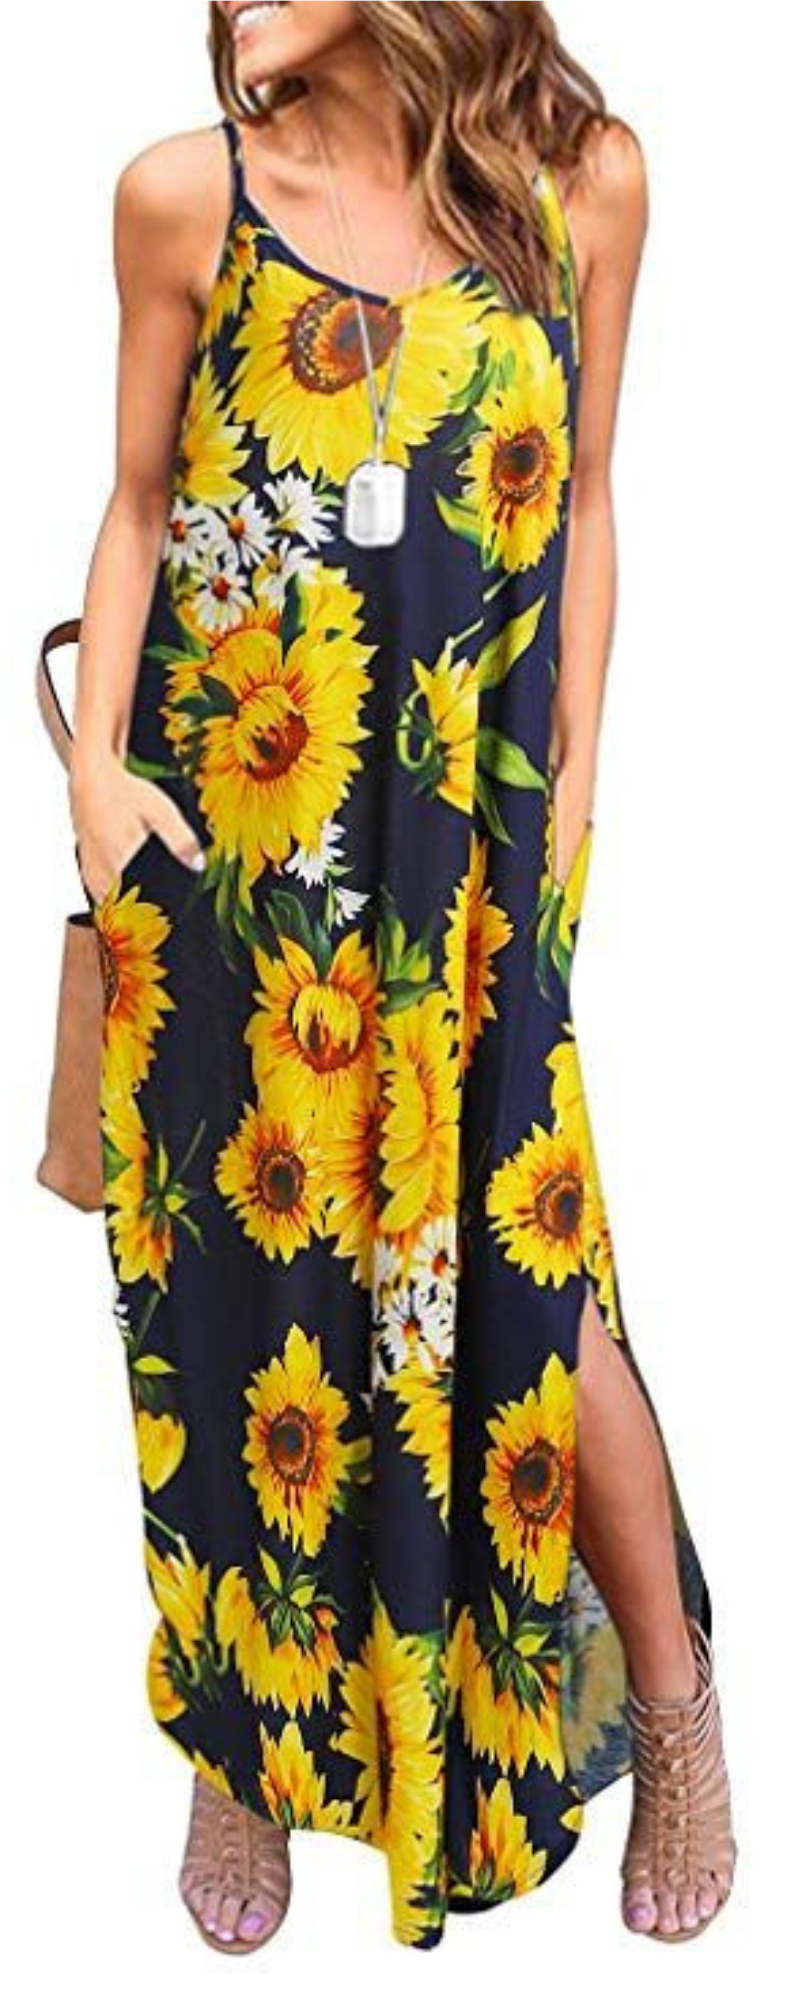 women's summer casual pockets strappy long dress loose beach